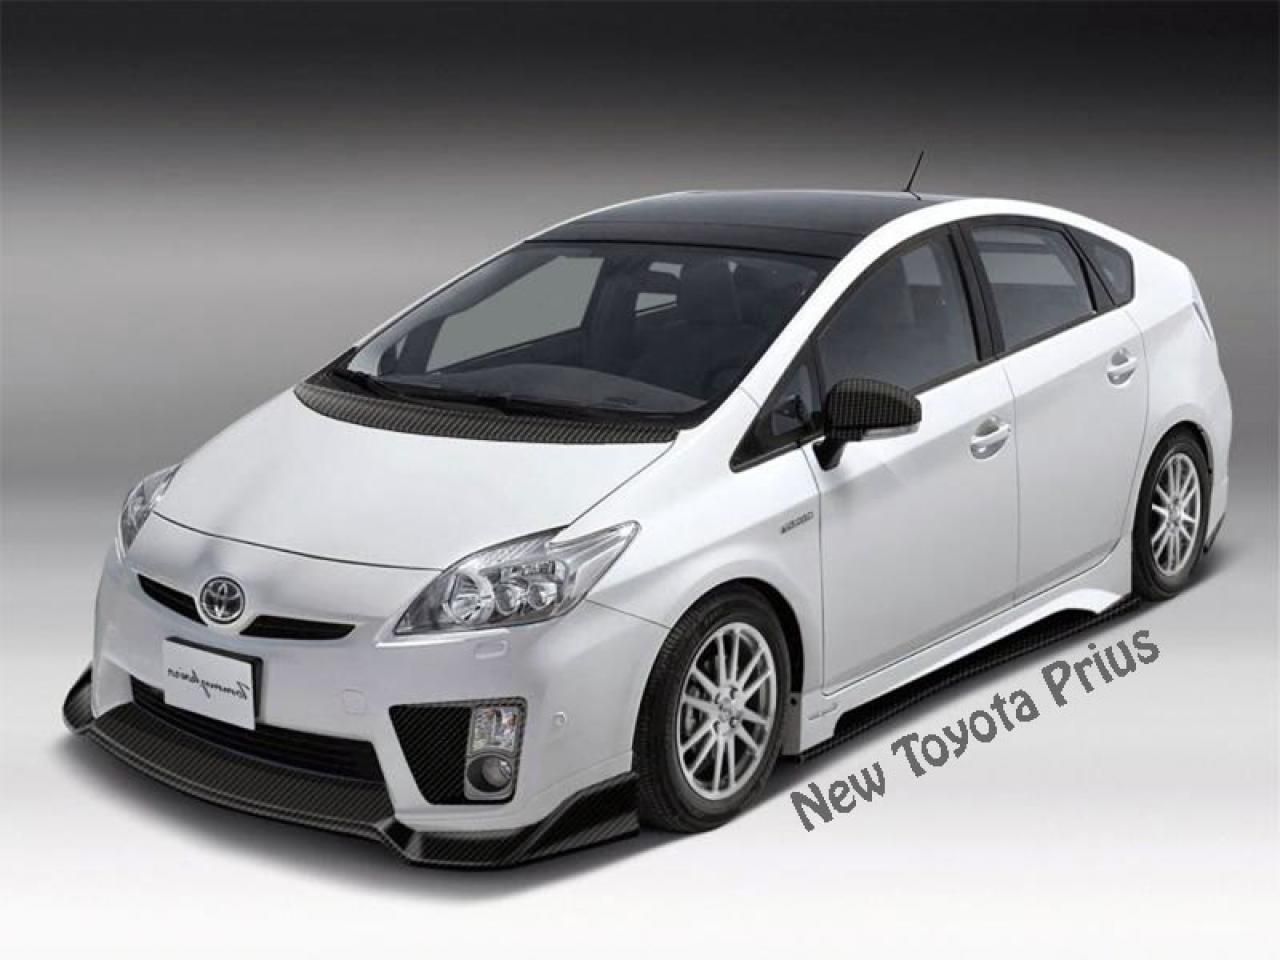 2016 toyota prius information and photos zombiedrive. Black Bedroom Furniture Sets. Home Design Ideas